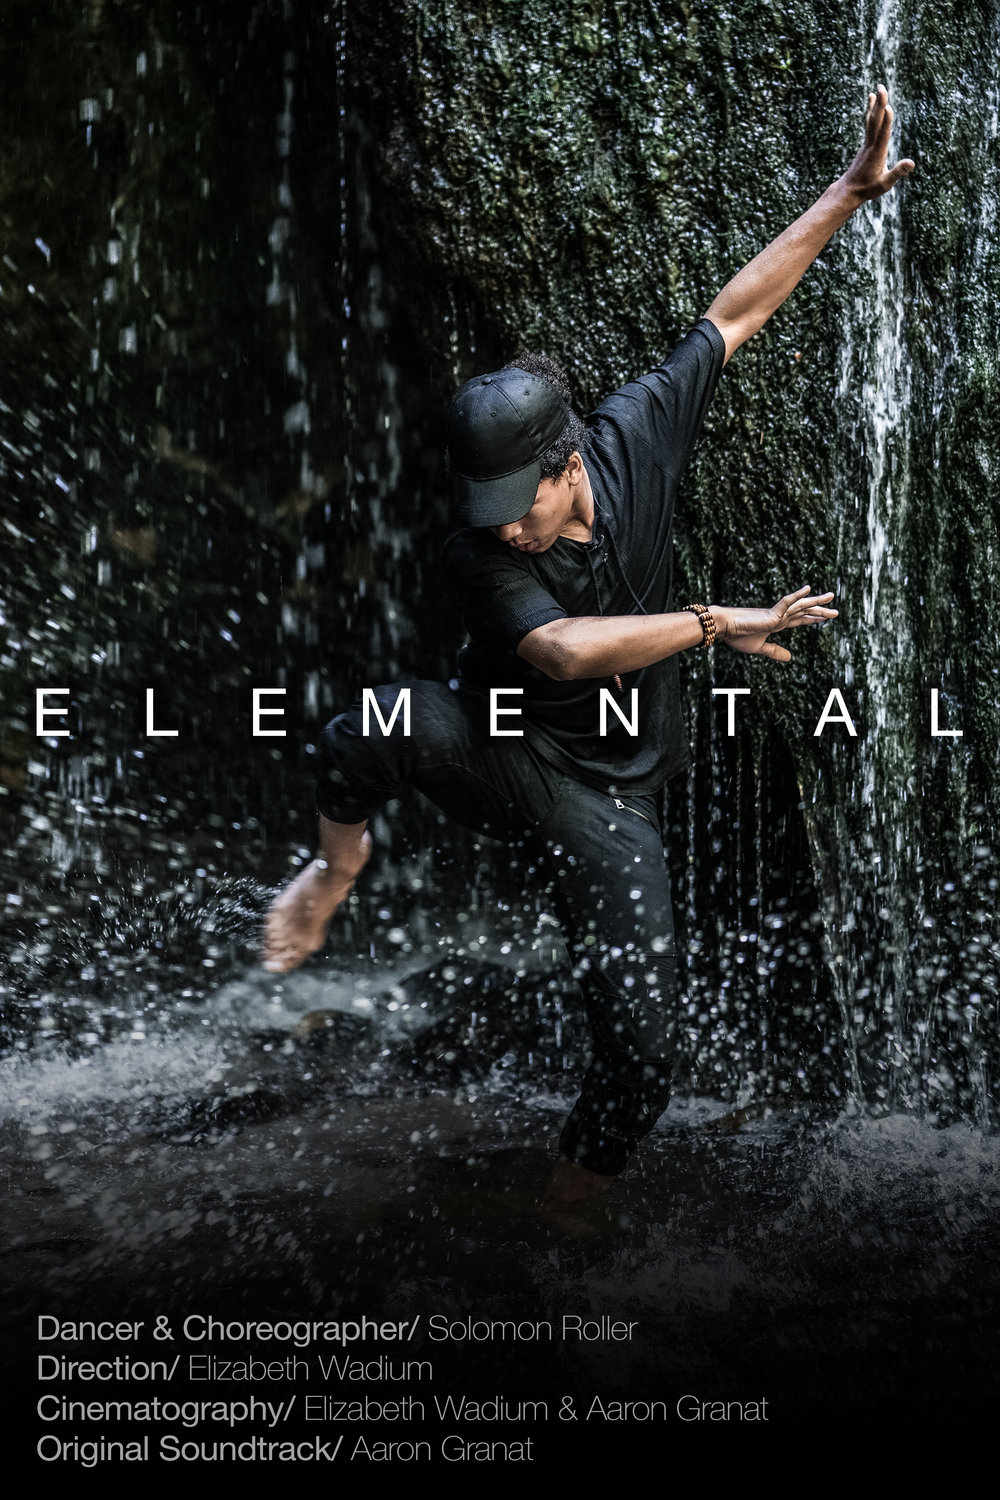 Elemental - director, cinematographer (currently in submission)StandardVision Award for Artistic Merit2019 Migrations Dance Film Programme2019 Wildwood Film Festival2019 Green Bay Film Festival2018 Capitol Dance & Cinema Festival2018 Flatlands Dance Film Festival2018 Portland Dance Film Fest2018 Cascadia Dance & Cinema Festival2018 Wisconsin Film Festival2018 Tiny Dance Film FestPressInterview with StandardVision